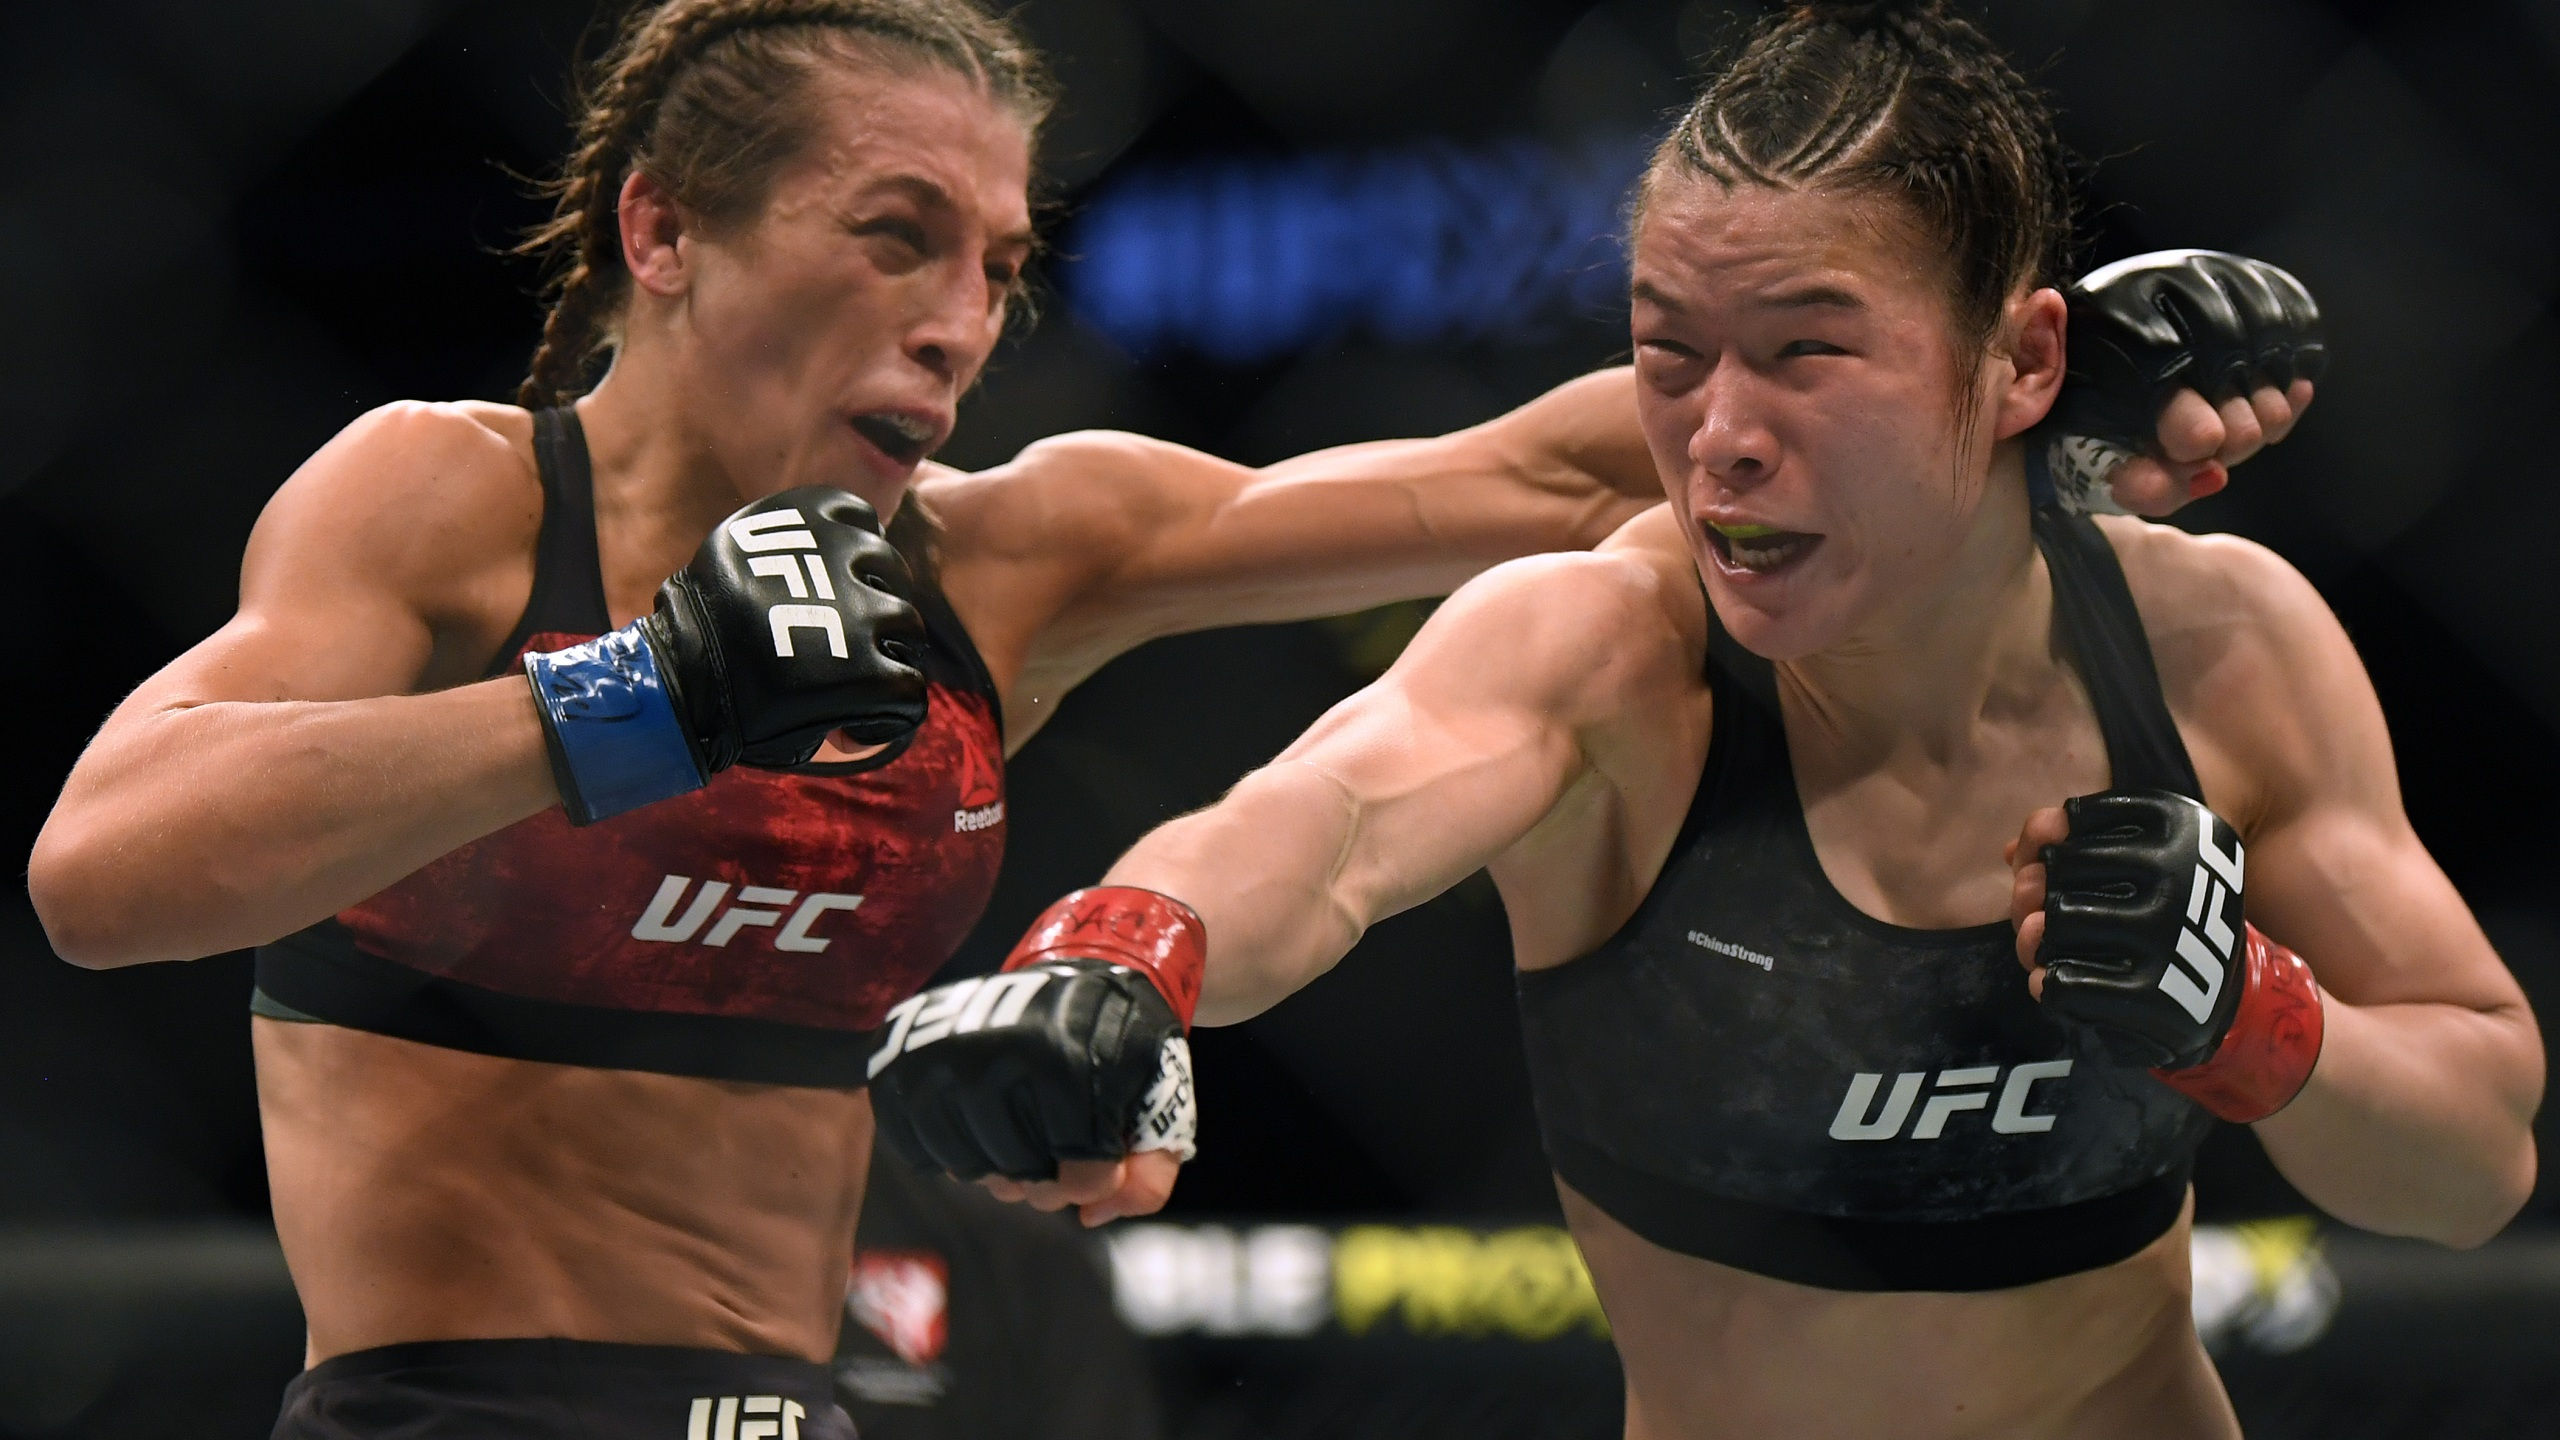 Weili Zhang punches Joanna Jedrzejczyk during UFC 248, the last UFC event to take place in front of fans. (Harry How/Getty Images North America/Getty Images)